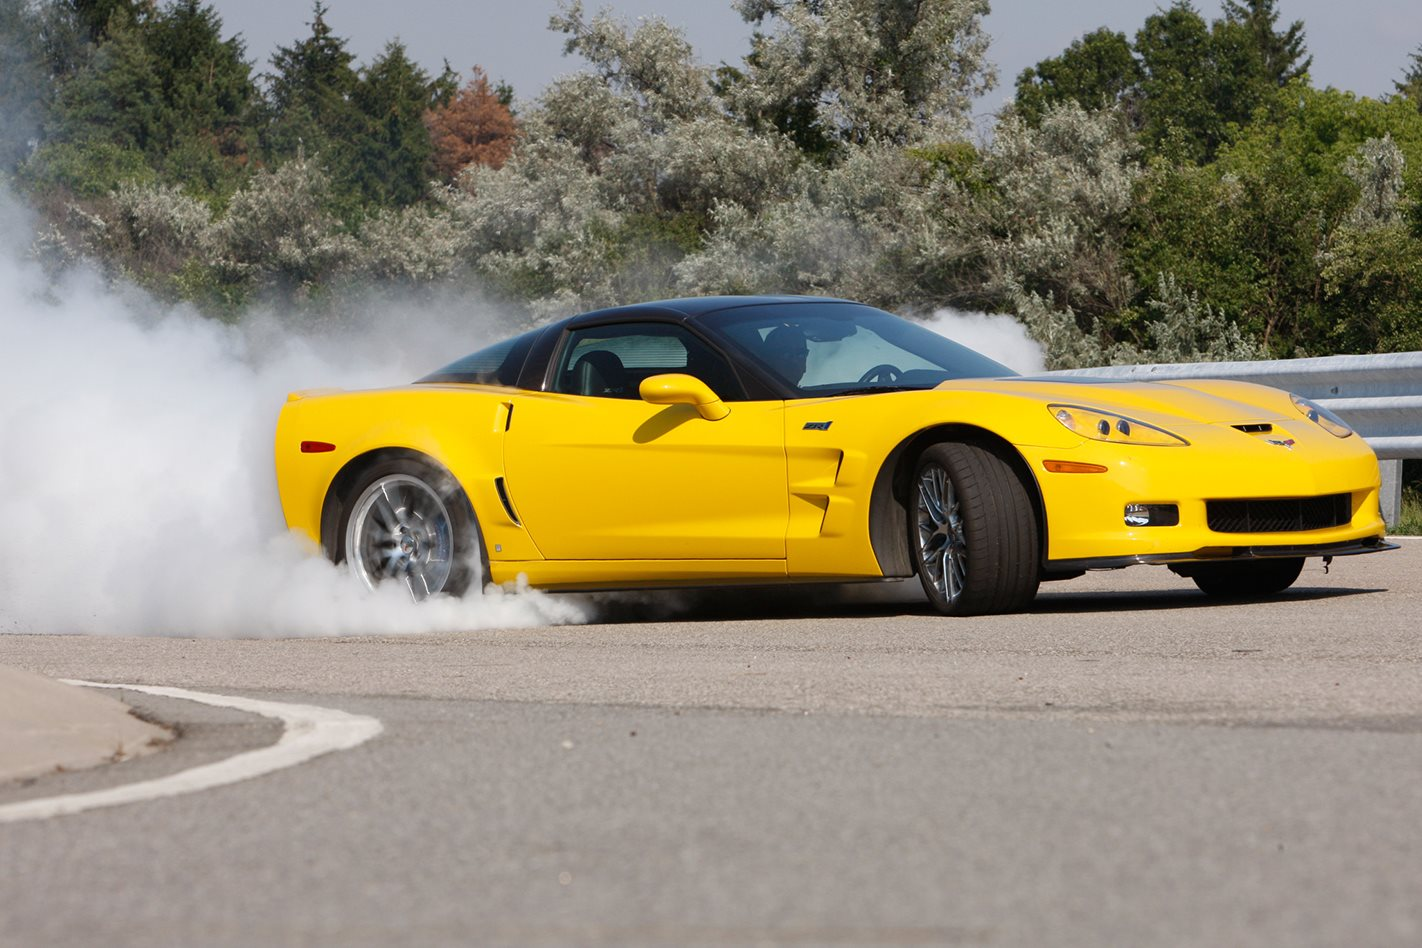 2009-Chevrolet-Corvette-ZR1.jpg